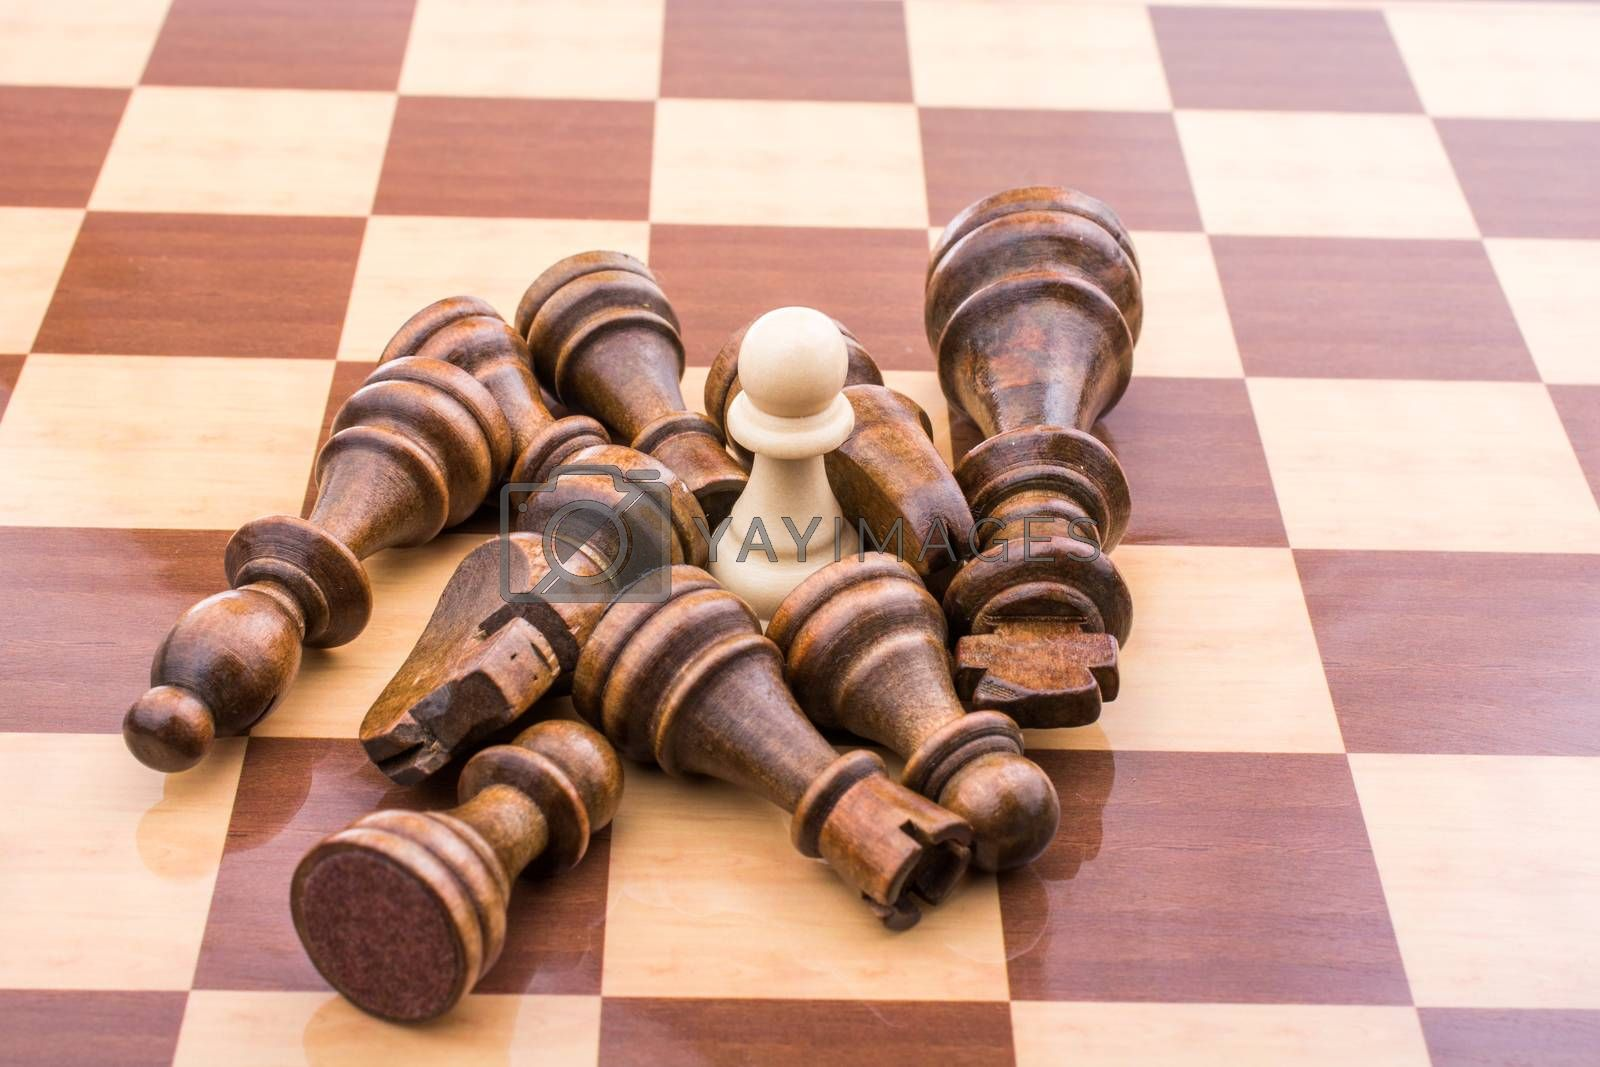 Chess board with chess pieces  on it